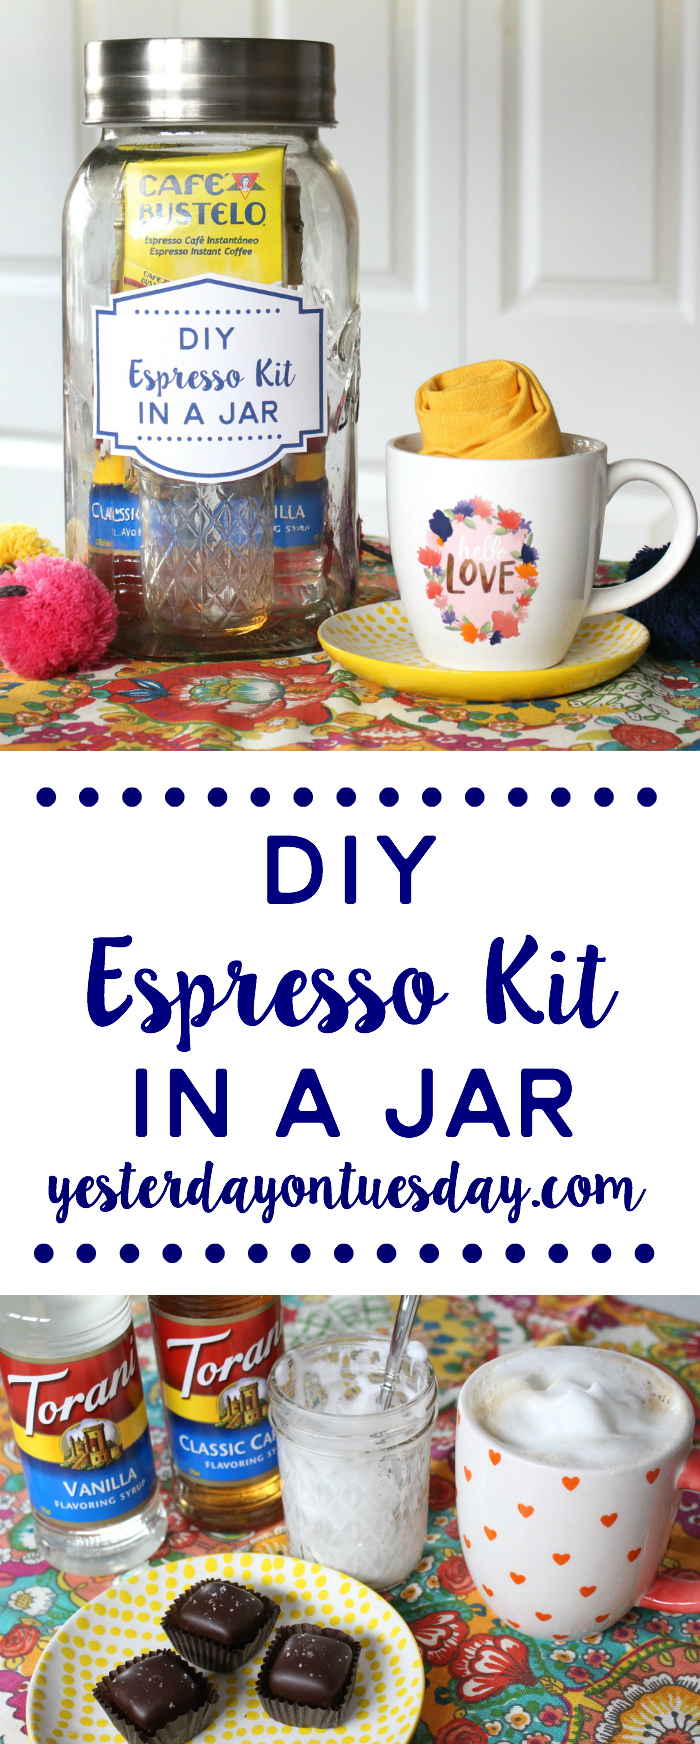 DIY Espresso Kit in Jar: Everything you need to make flavored espresso at home, no espresso machine or needed! Plus how to froth milk in a mason jar.